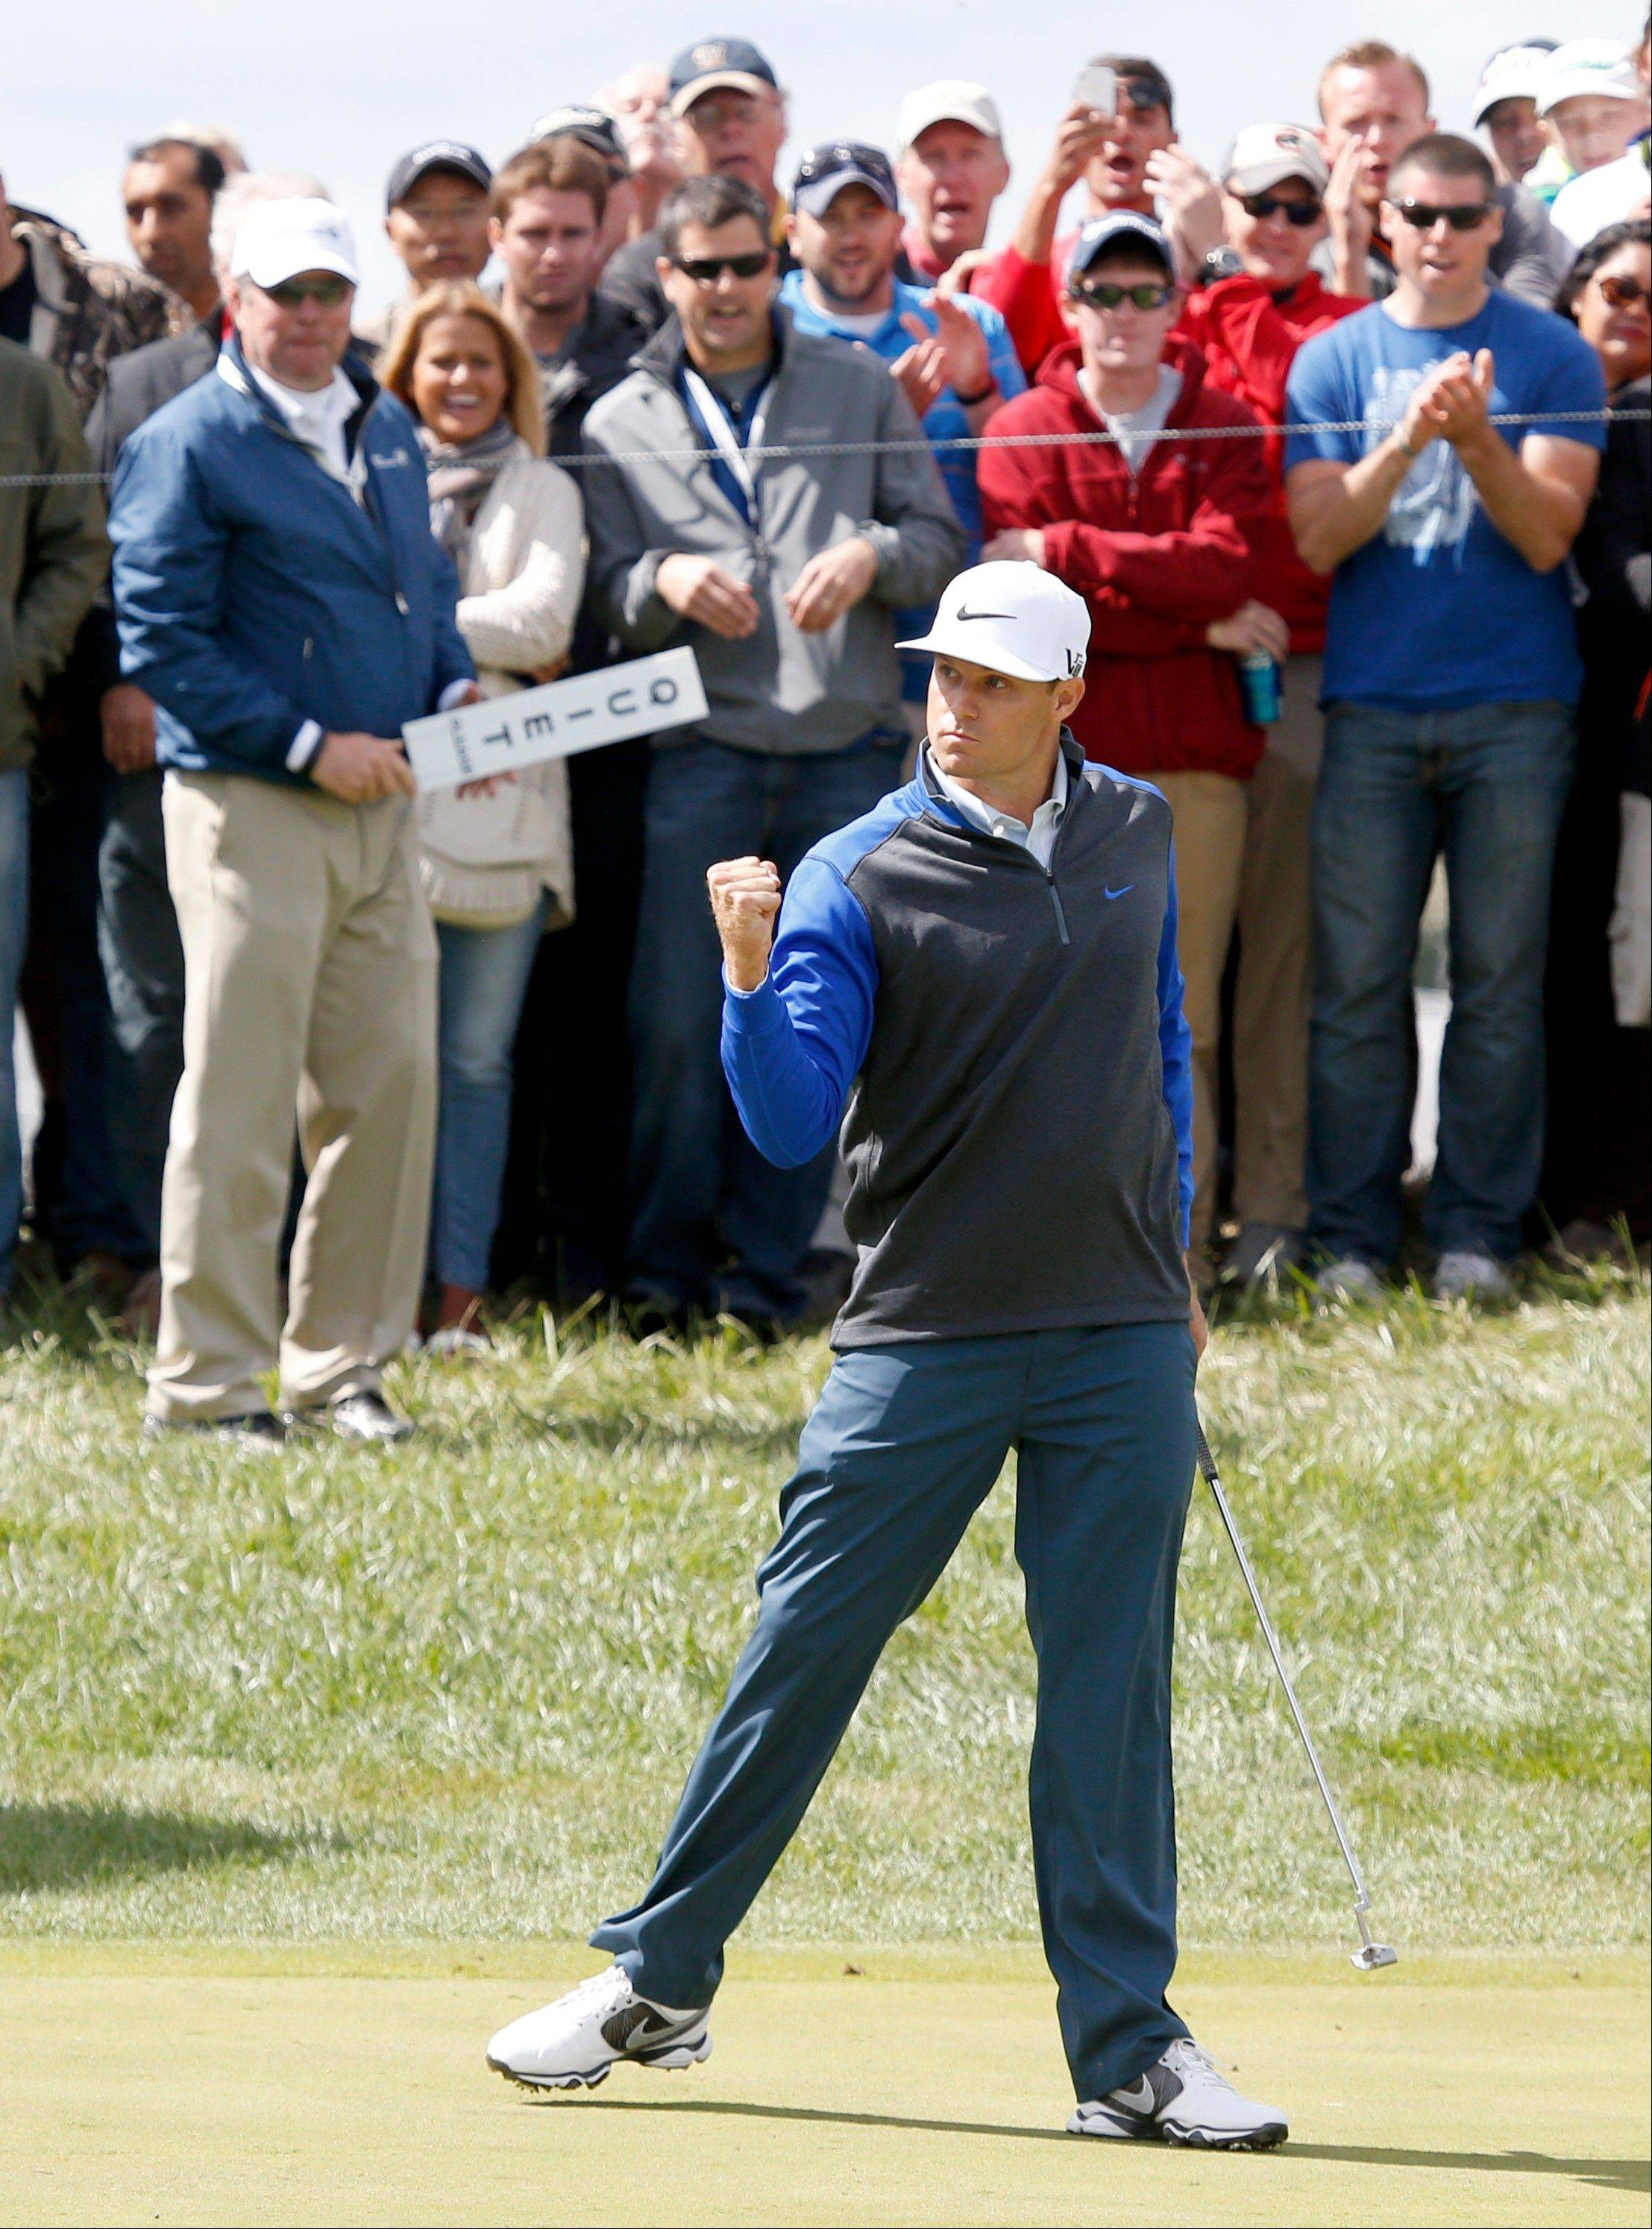 Nick Watney pumps his fist after making a birdie on the 17th green.